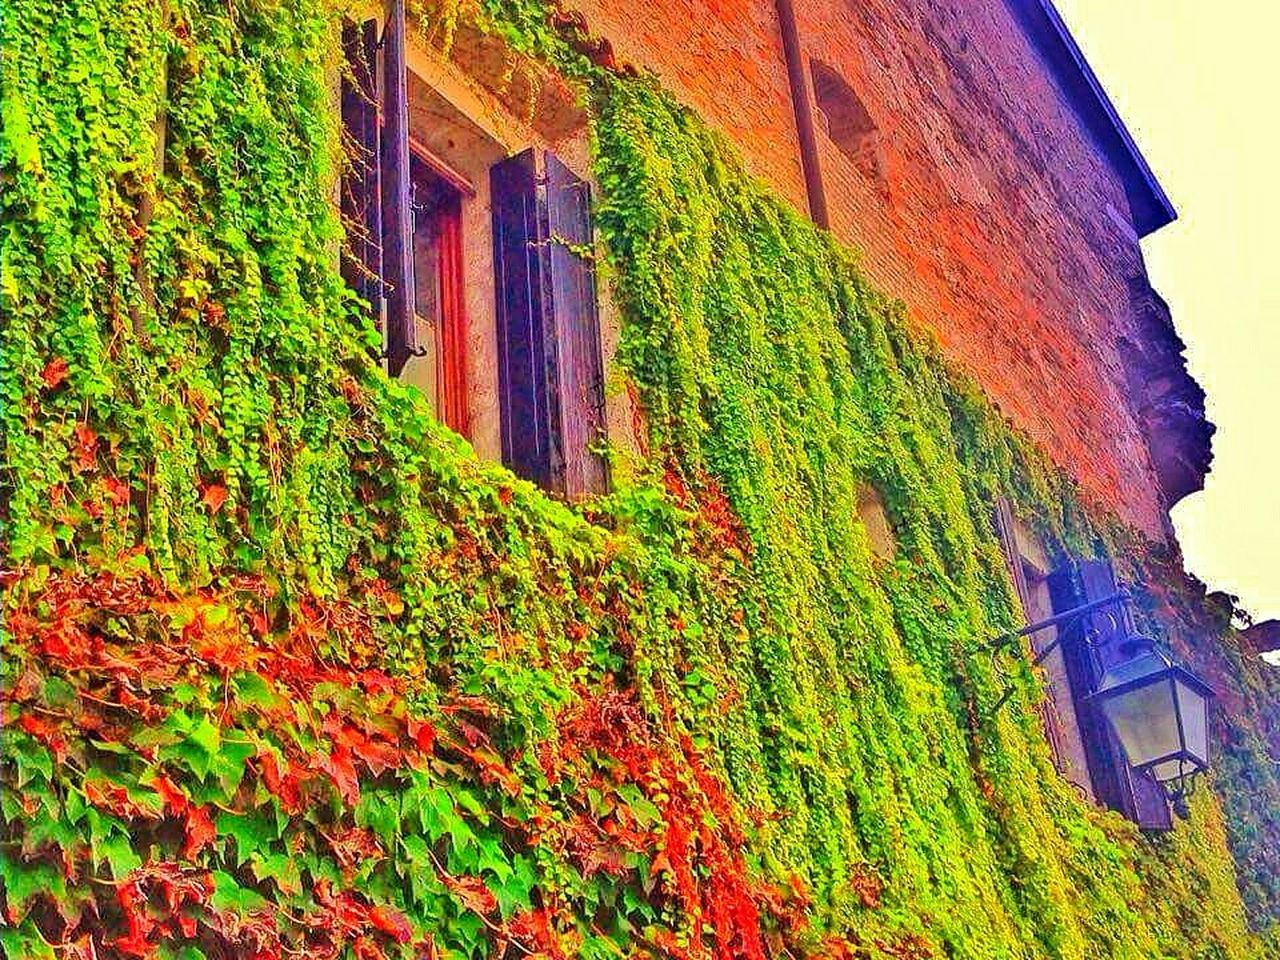 architecture, building exterior, built structure, house, low angle view, no people, outdoors, day, growth, window, plant, green color, nature, ivy, beauty in nature, sky